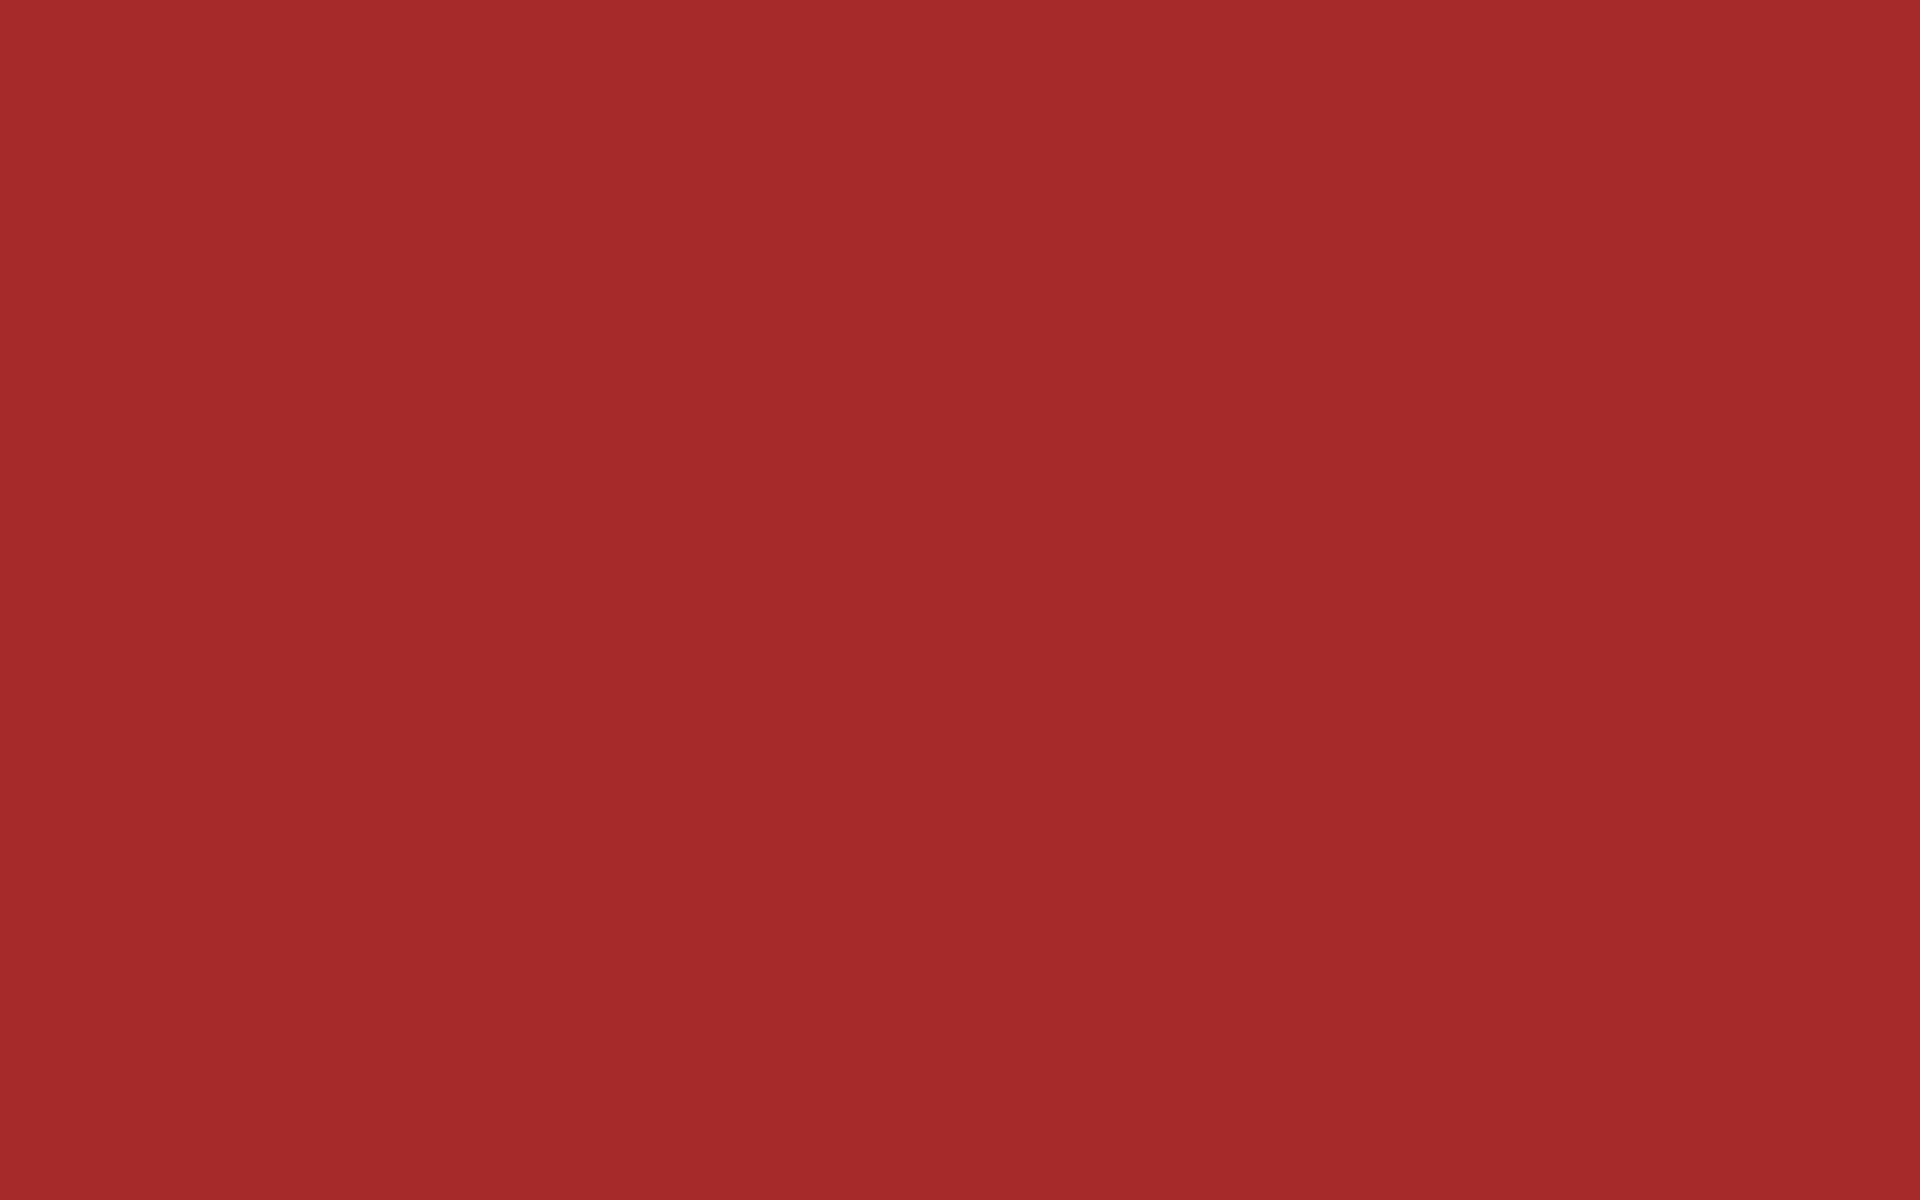 1920x1200 Red-brown Solid Color Background